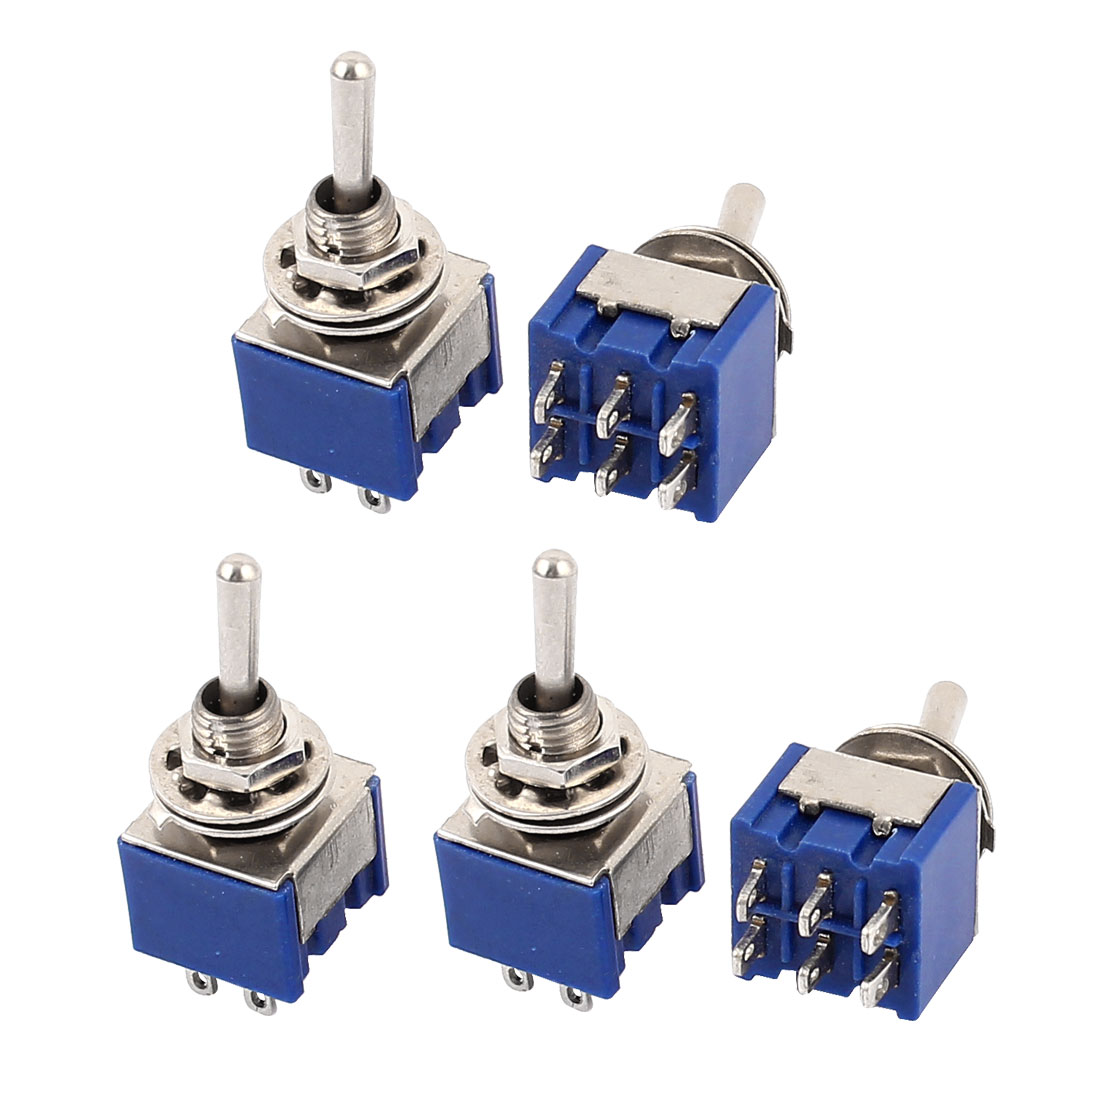 5 Pcs AC 125V 6A DPDT ON-ON 2 Positions 6 Pin Terminal Latching Miniature Toggle Switch